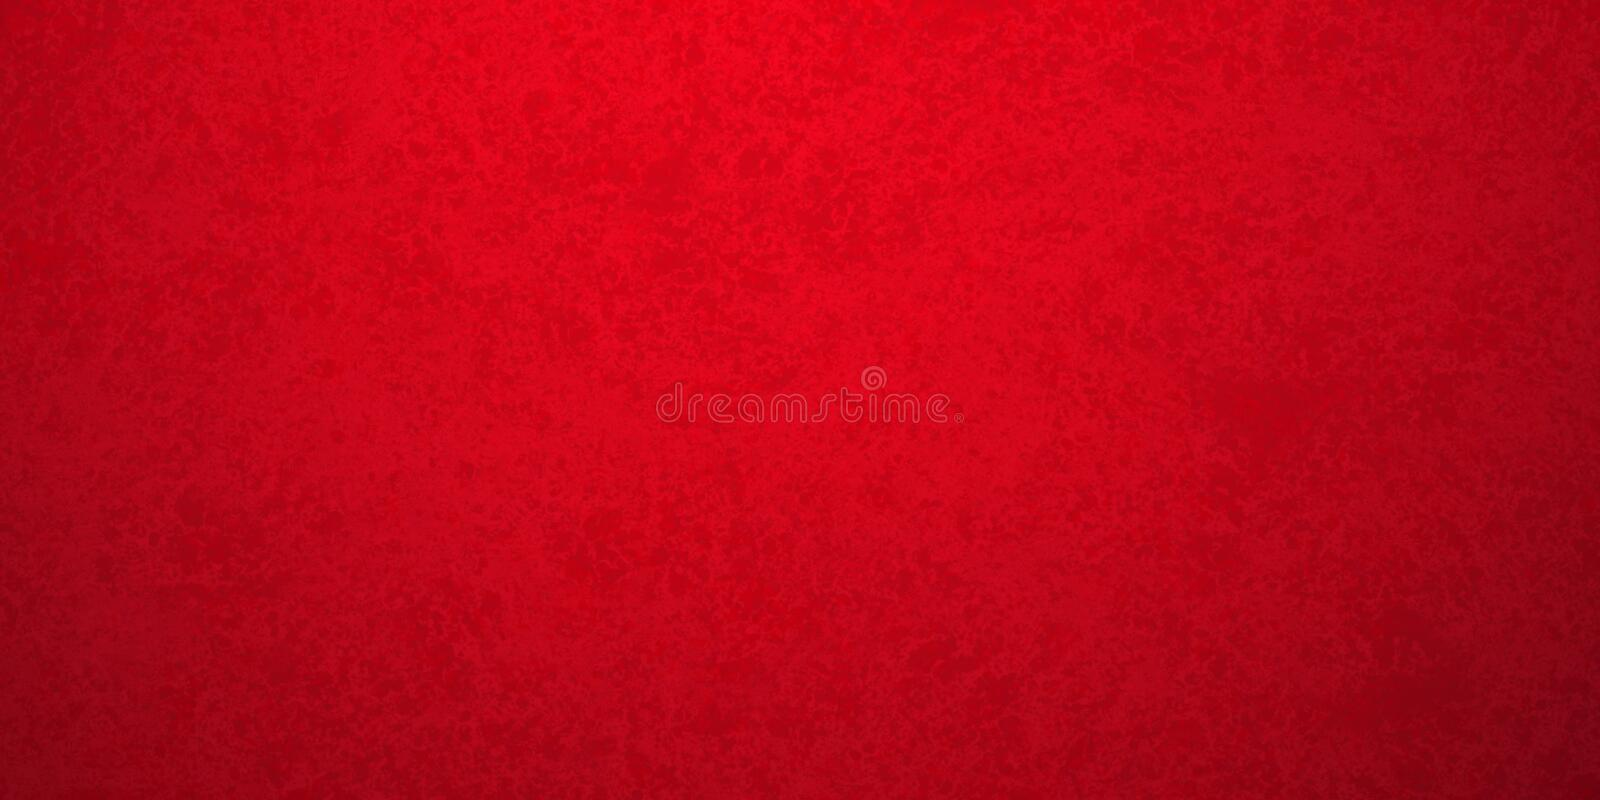 Red background in Christmas or valentines day holiday colors and old vintage texture, red painted plaster wall or metal textured m royalty free stock image